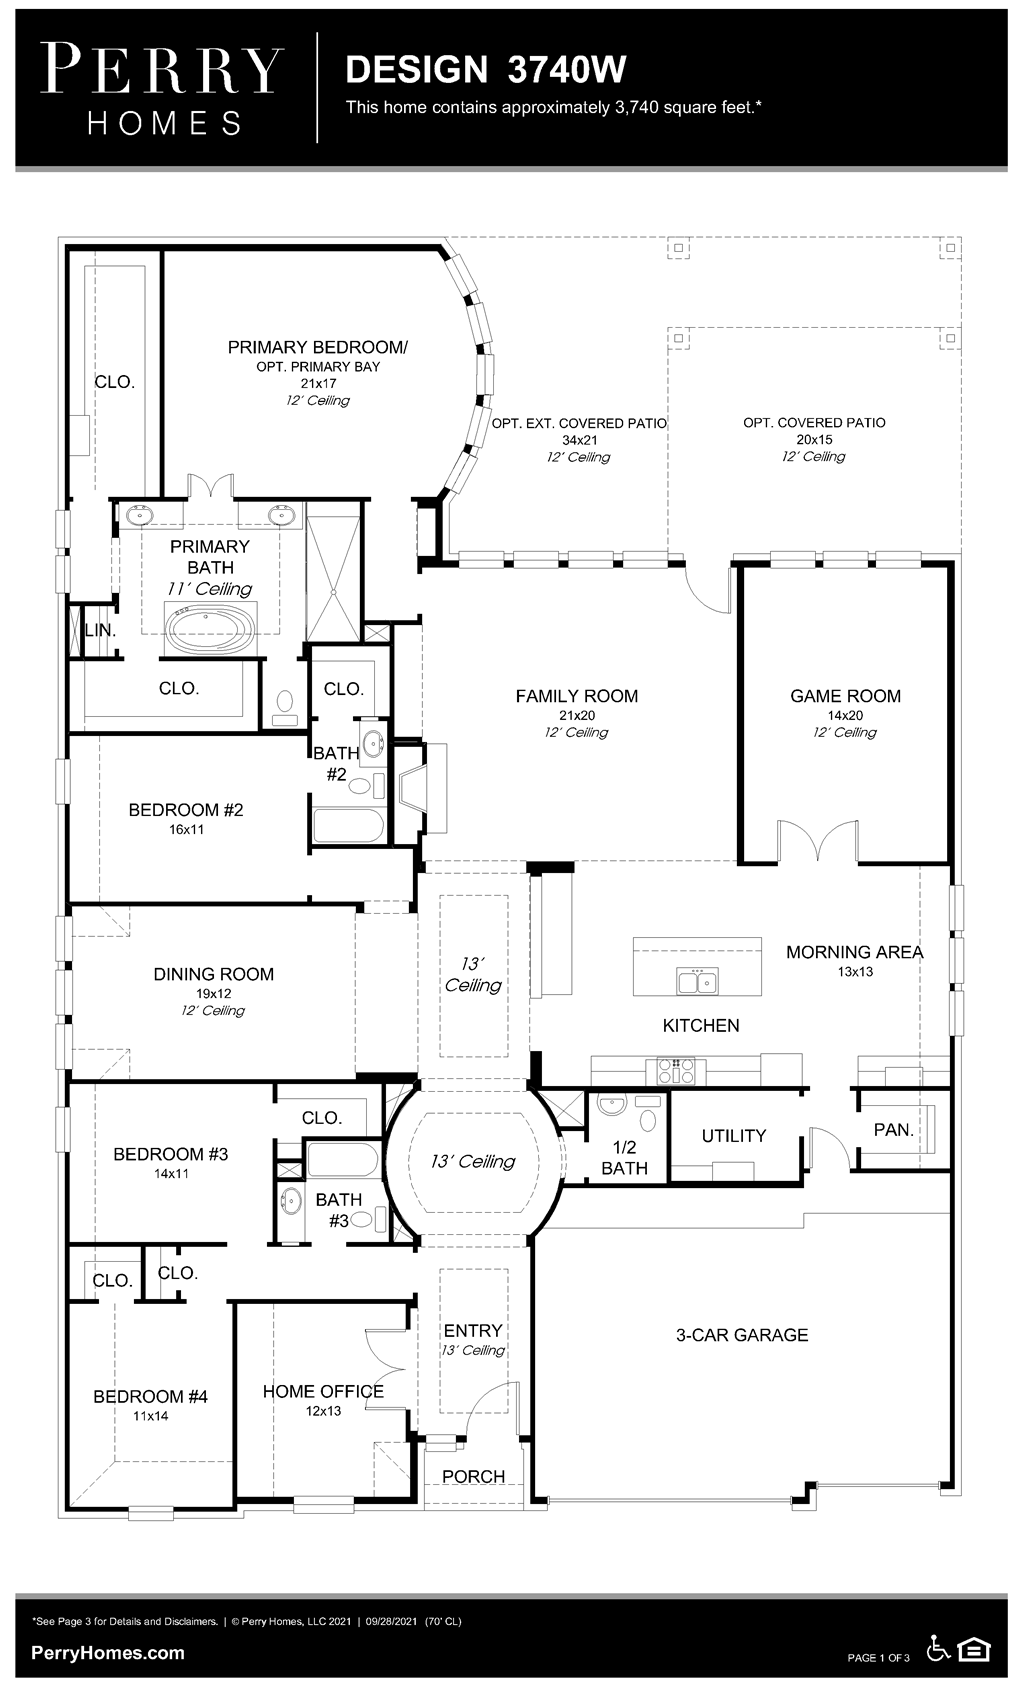 Floor Plan for 3740W